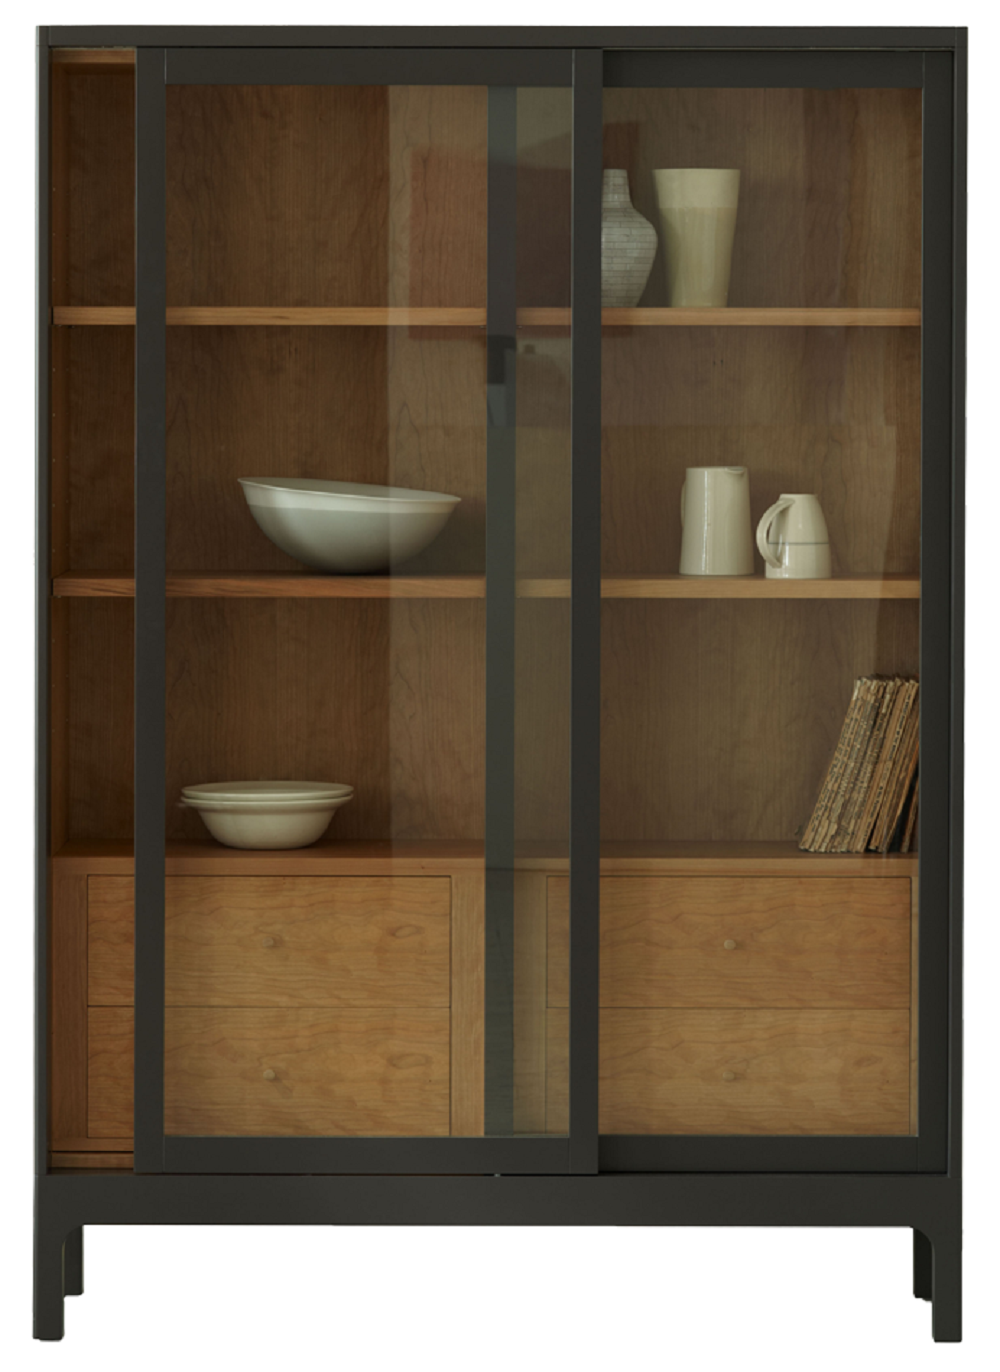 Joyce Cabinet By Russell Pinch For The Conran Shop Sliding